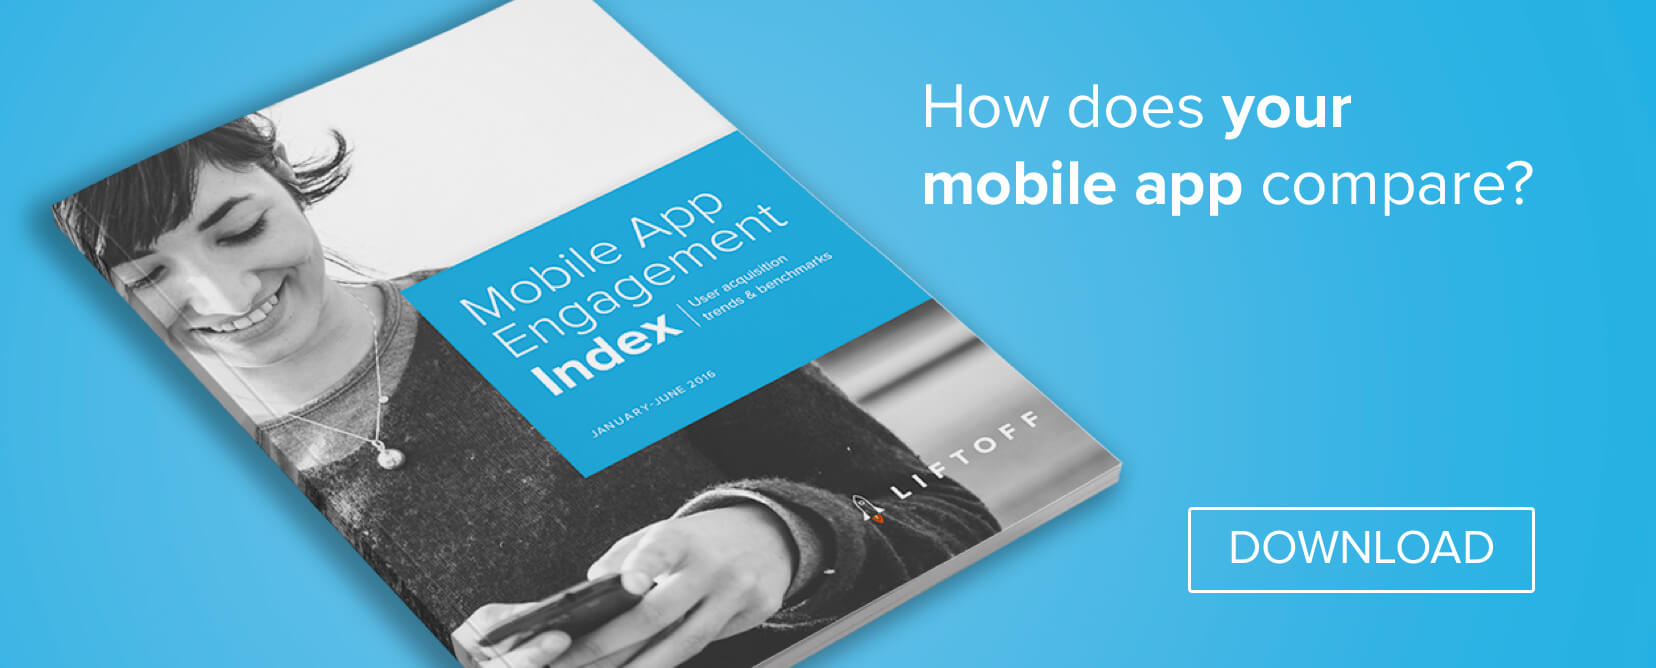 Liftoff Releases 2016 Mobile App Engagement Index; Details CPA Trends Across App Categories, Platforms and Gender